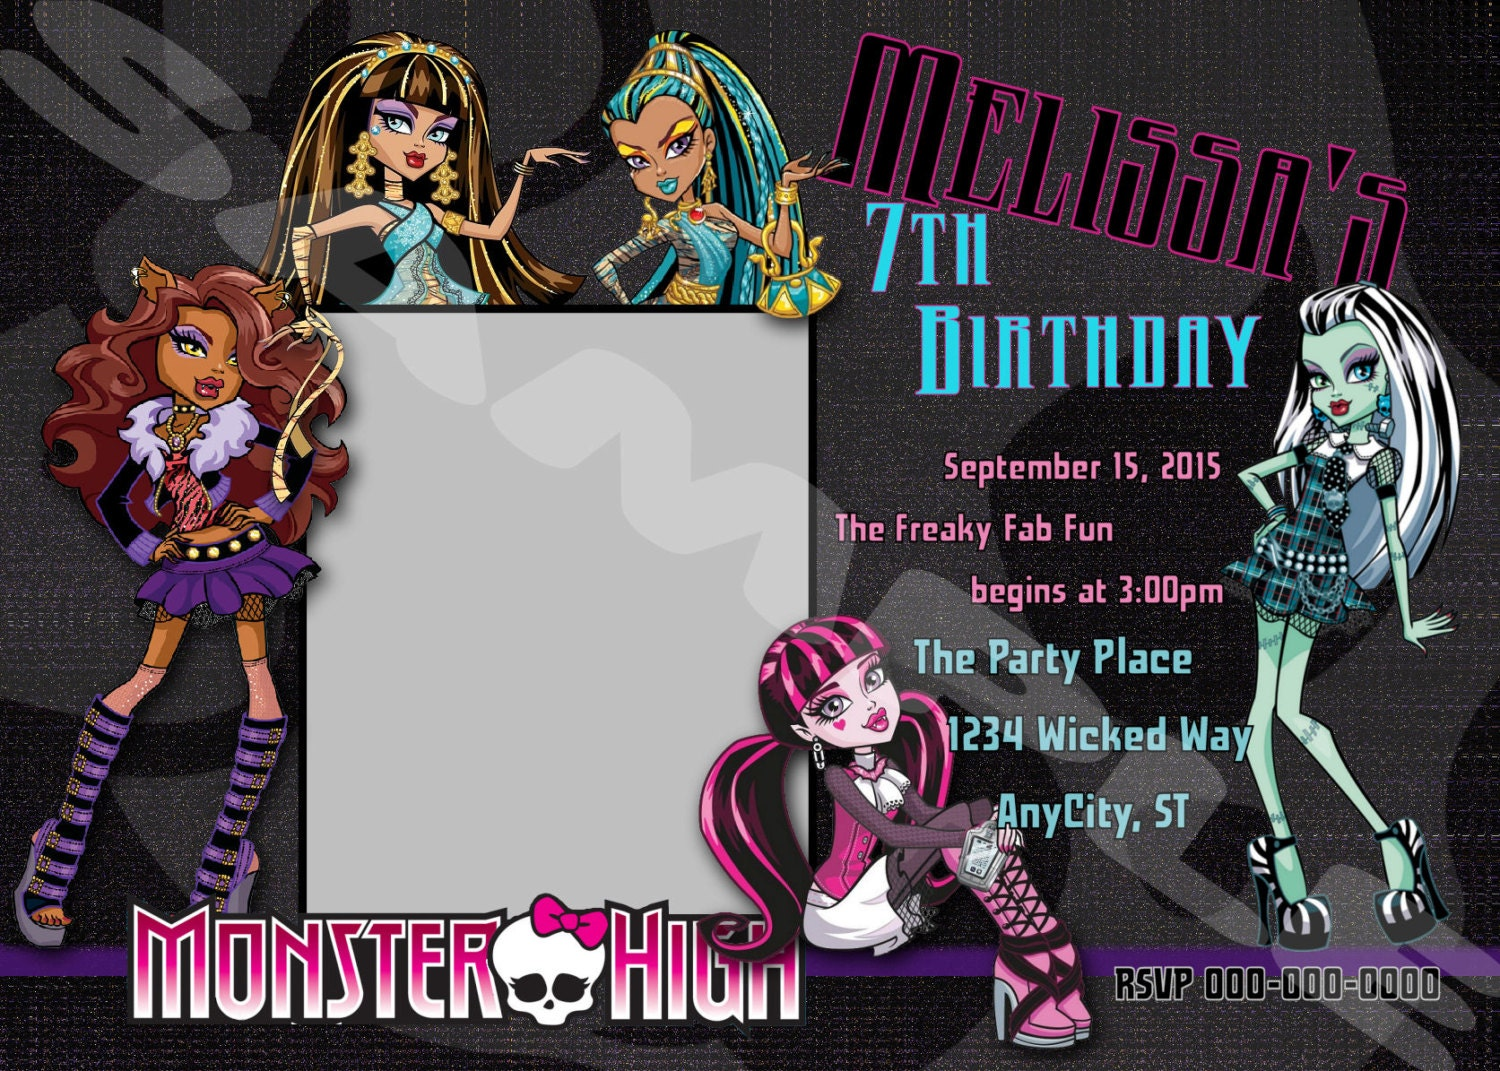 Monster High Party Invitations is good invitations example